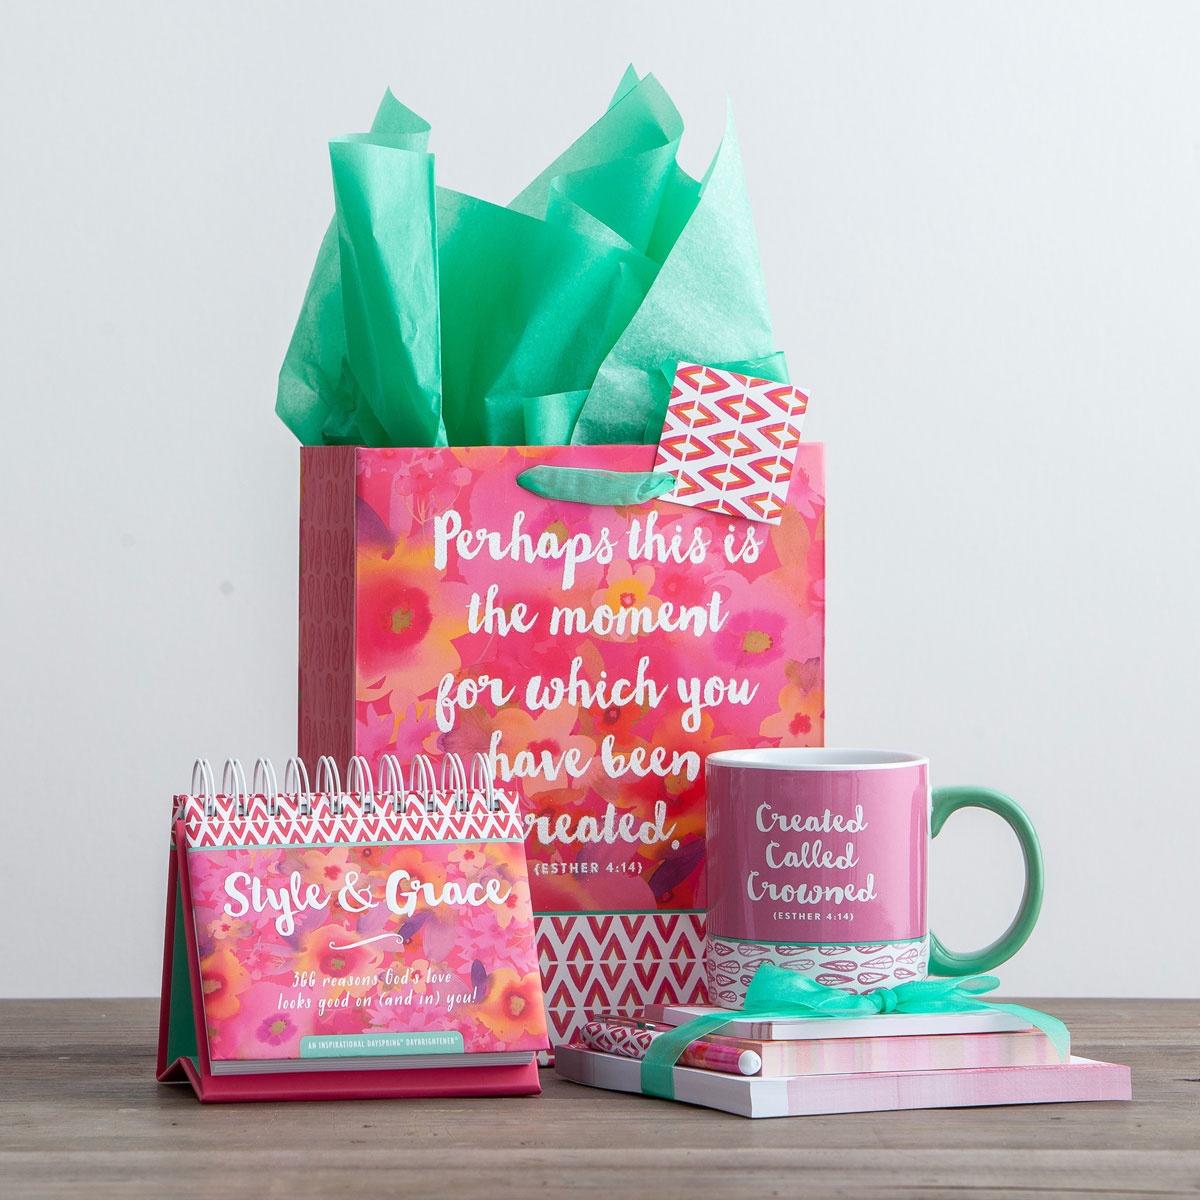 Created, Called, Crowned - 4-Piece Inspirational Gift Set